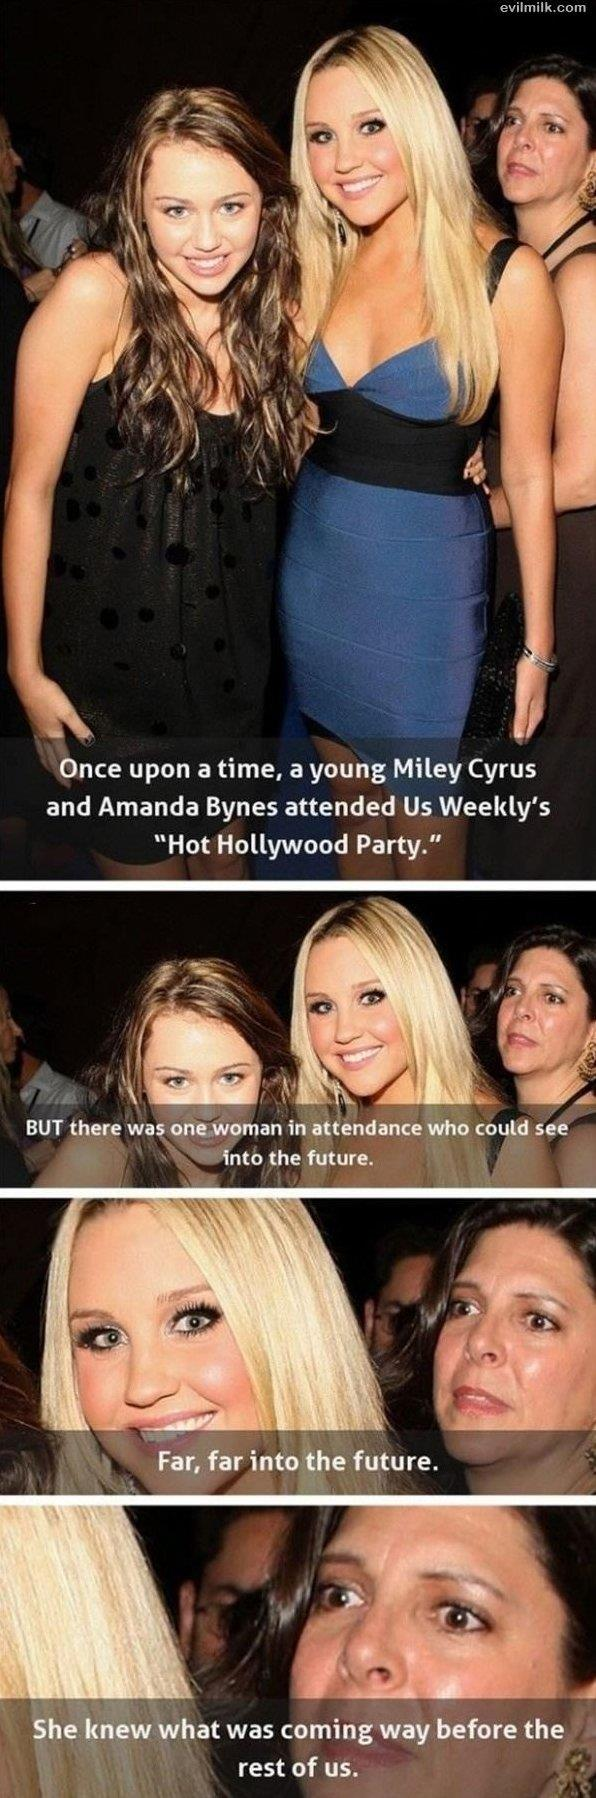 Miley Cyrus and Amanda Bynes